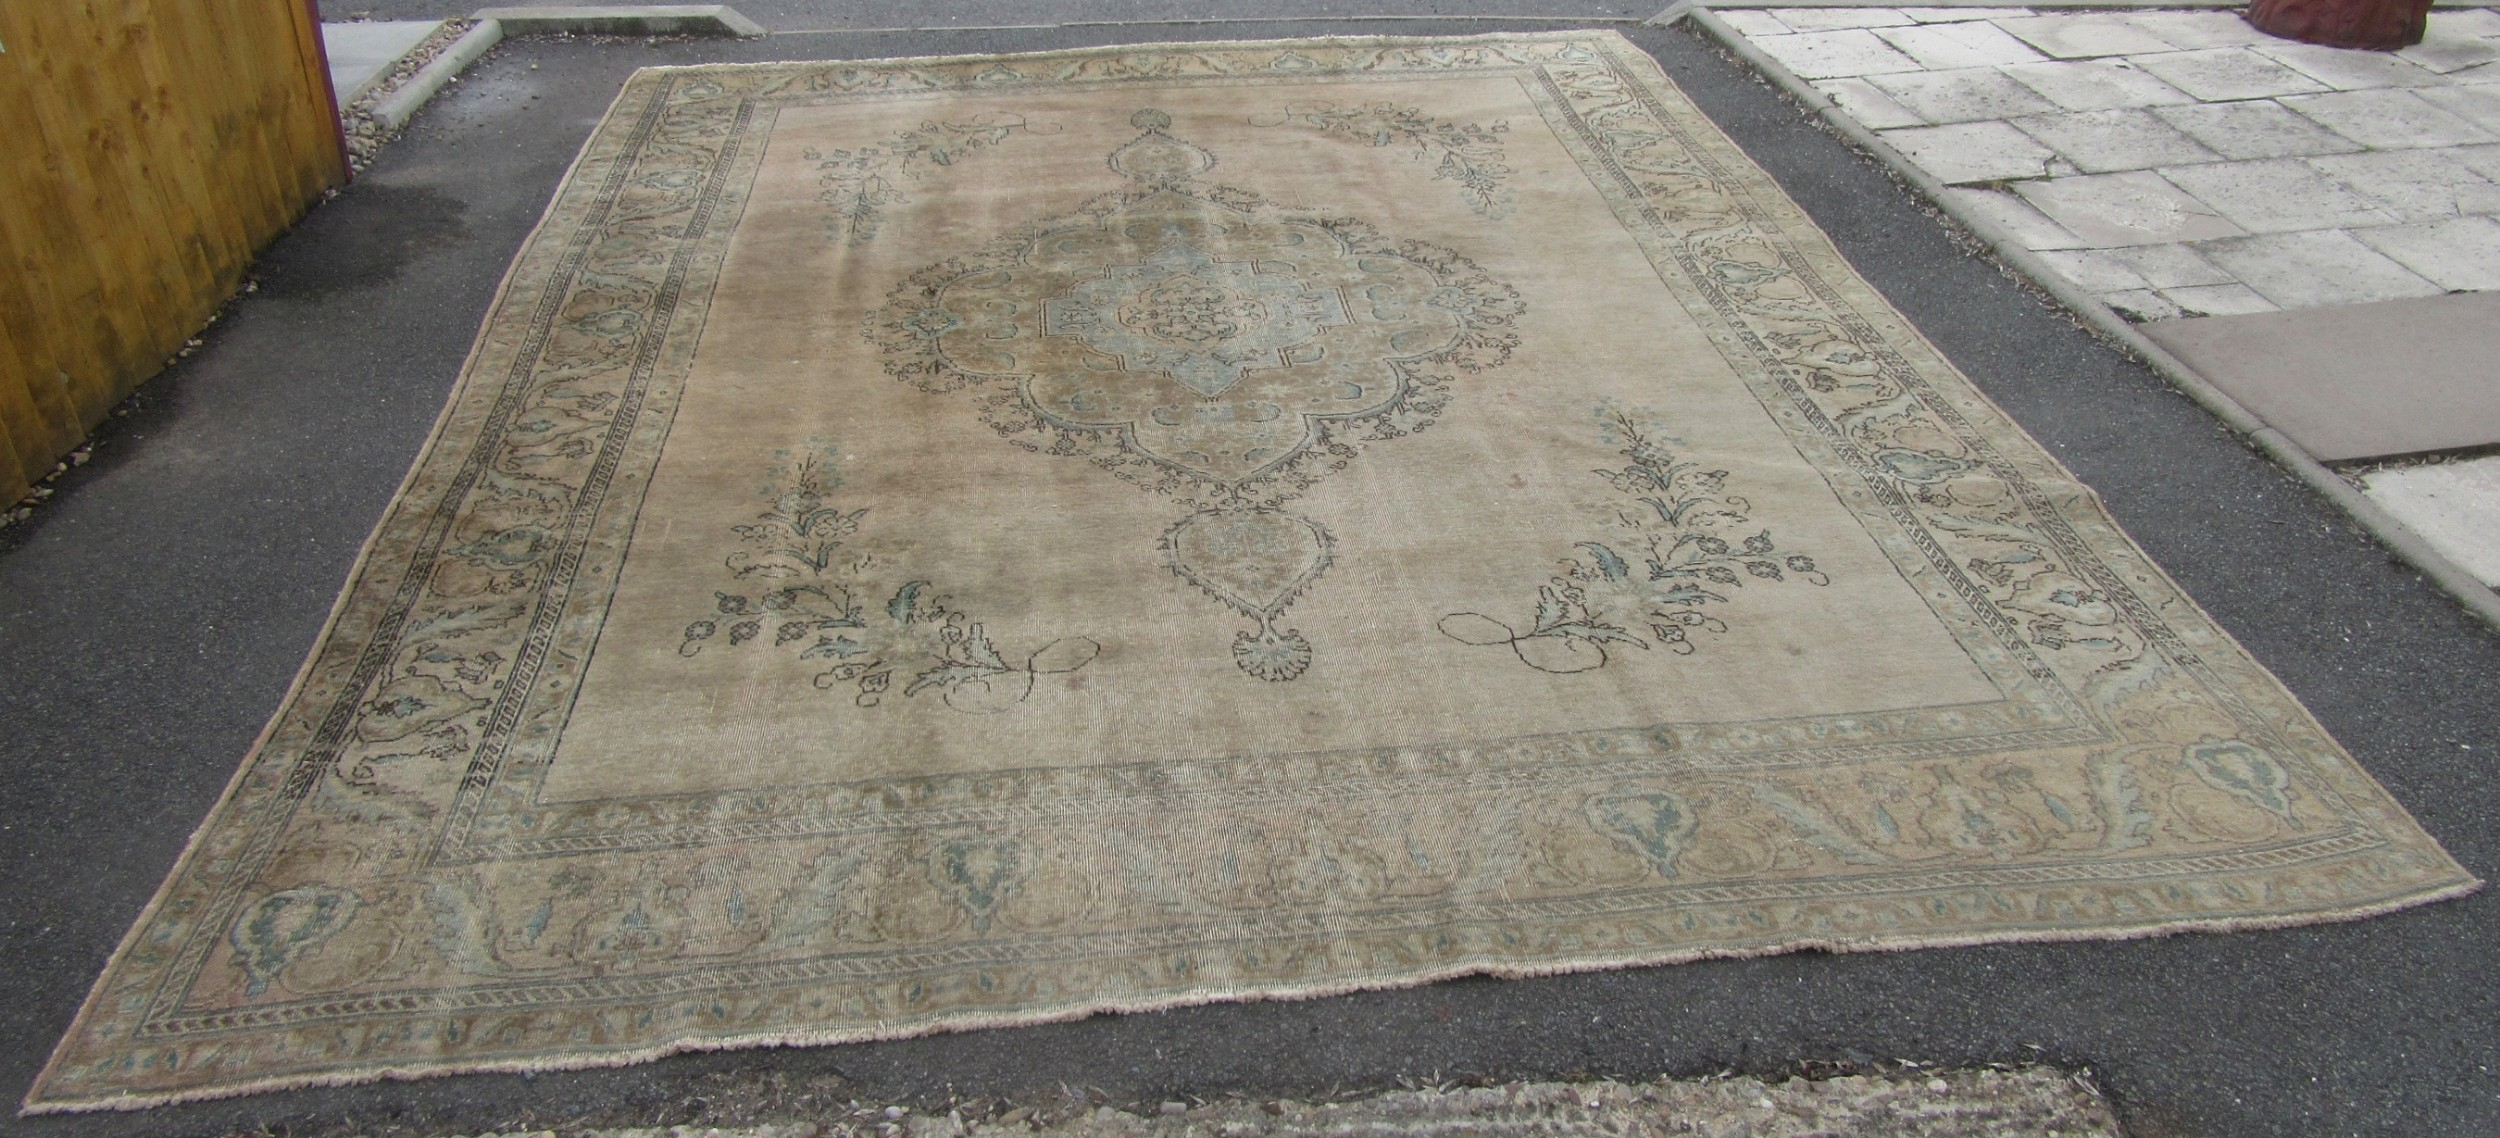 an antique country house shabby chic north west persian tabriz carpet 12 foot 9 by 9 foot 11 inches